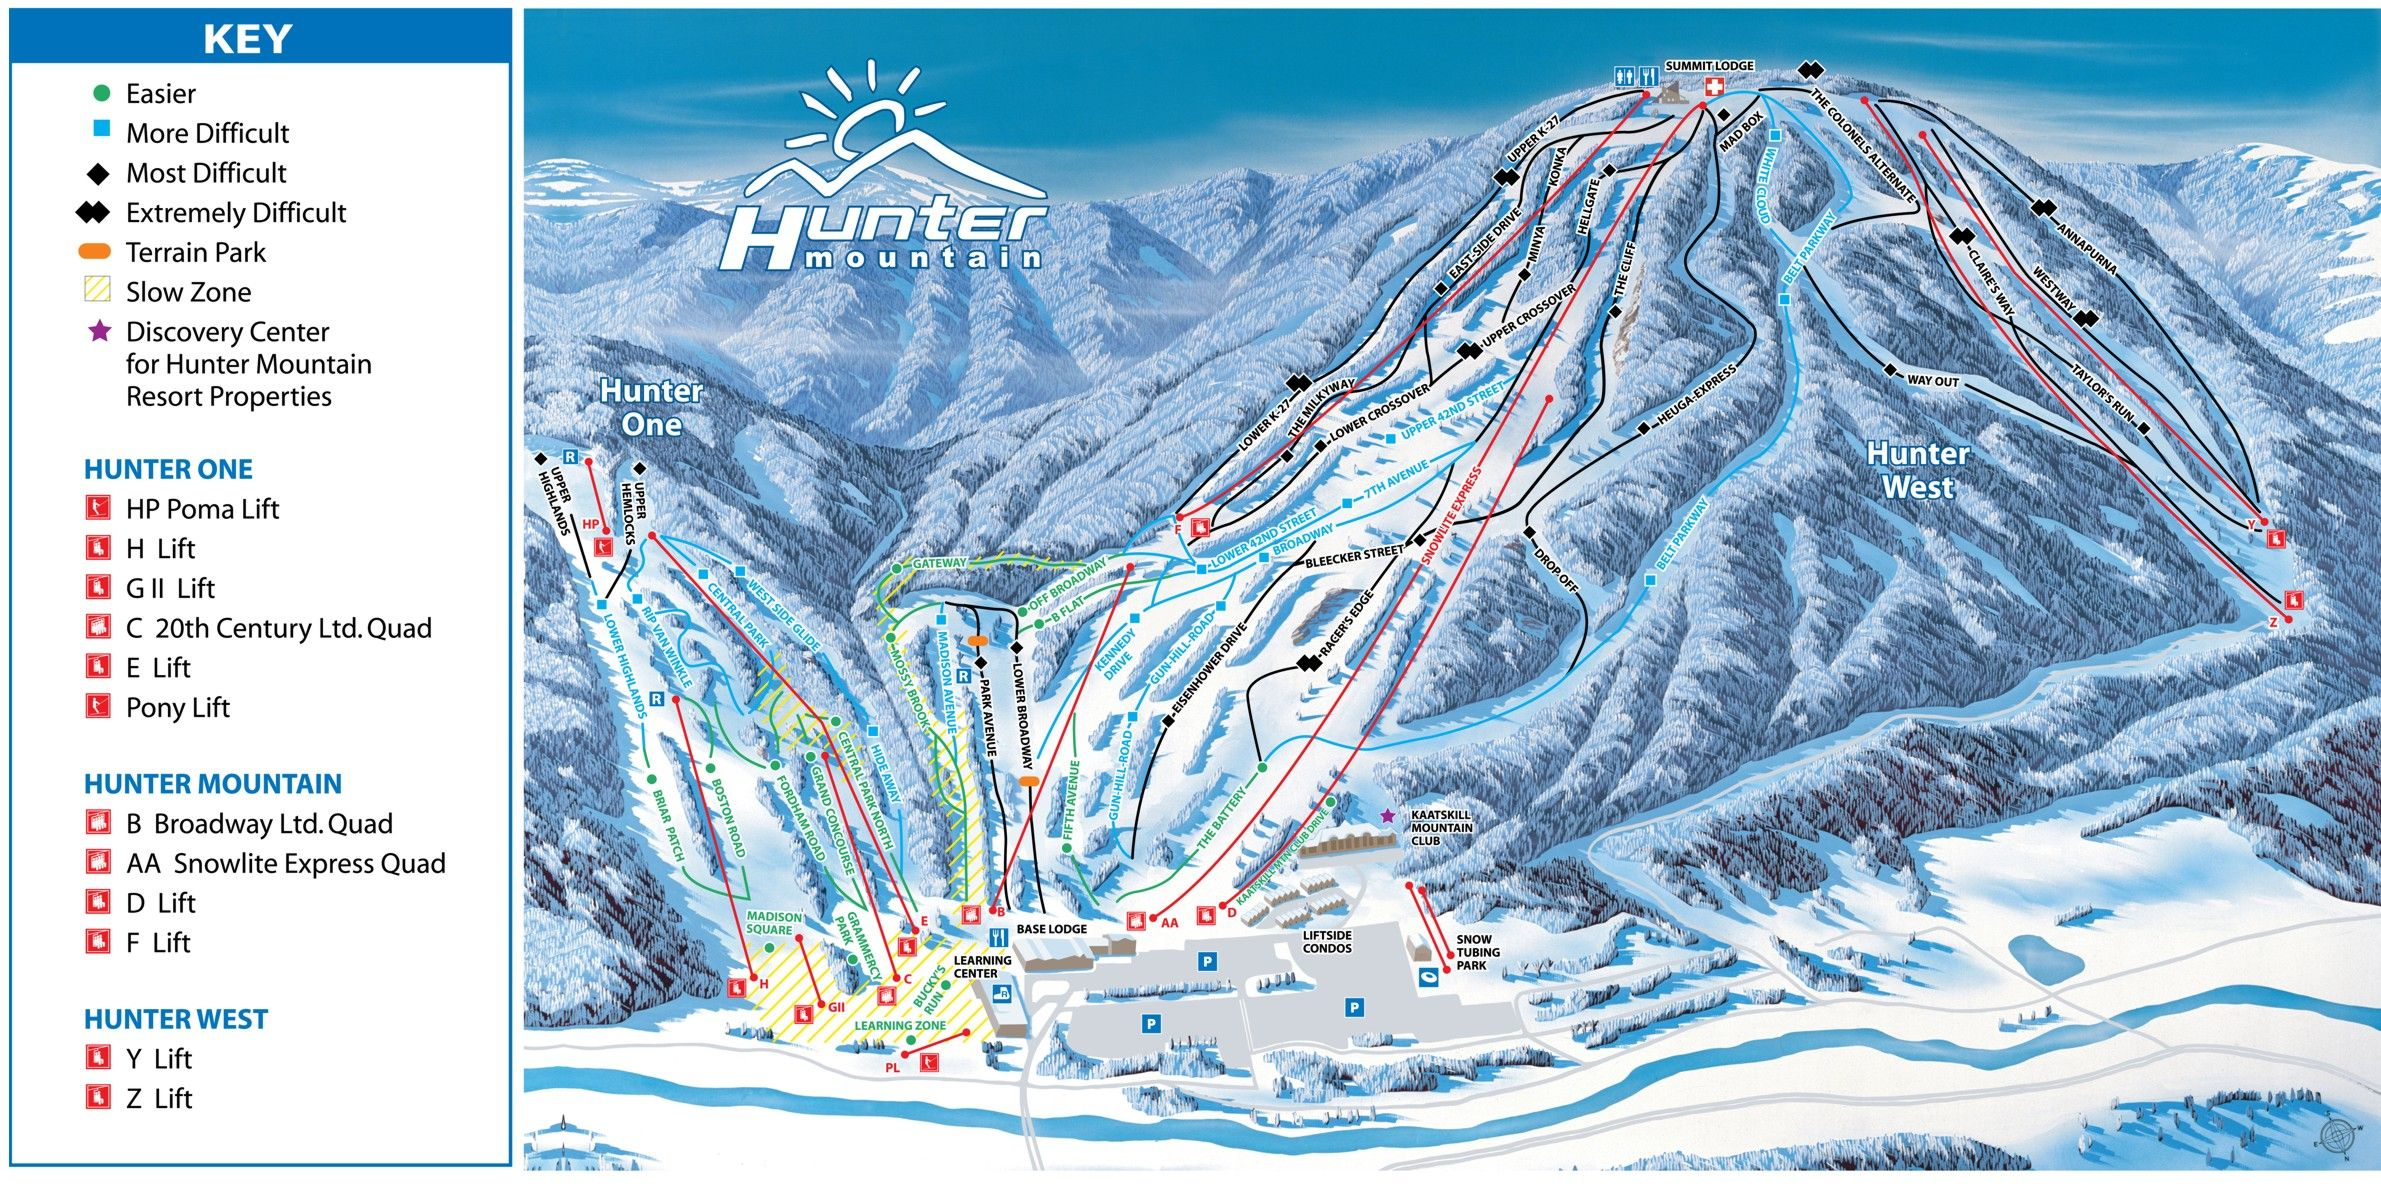 hunter mountain ski resort in hunter, ny | hunter mountain